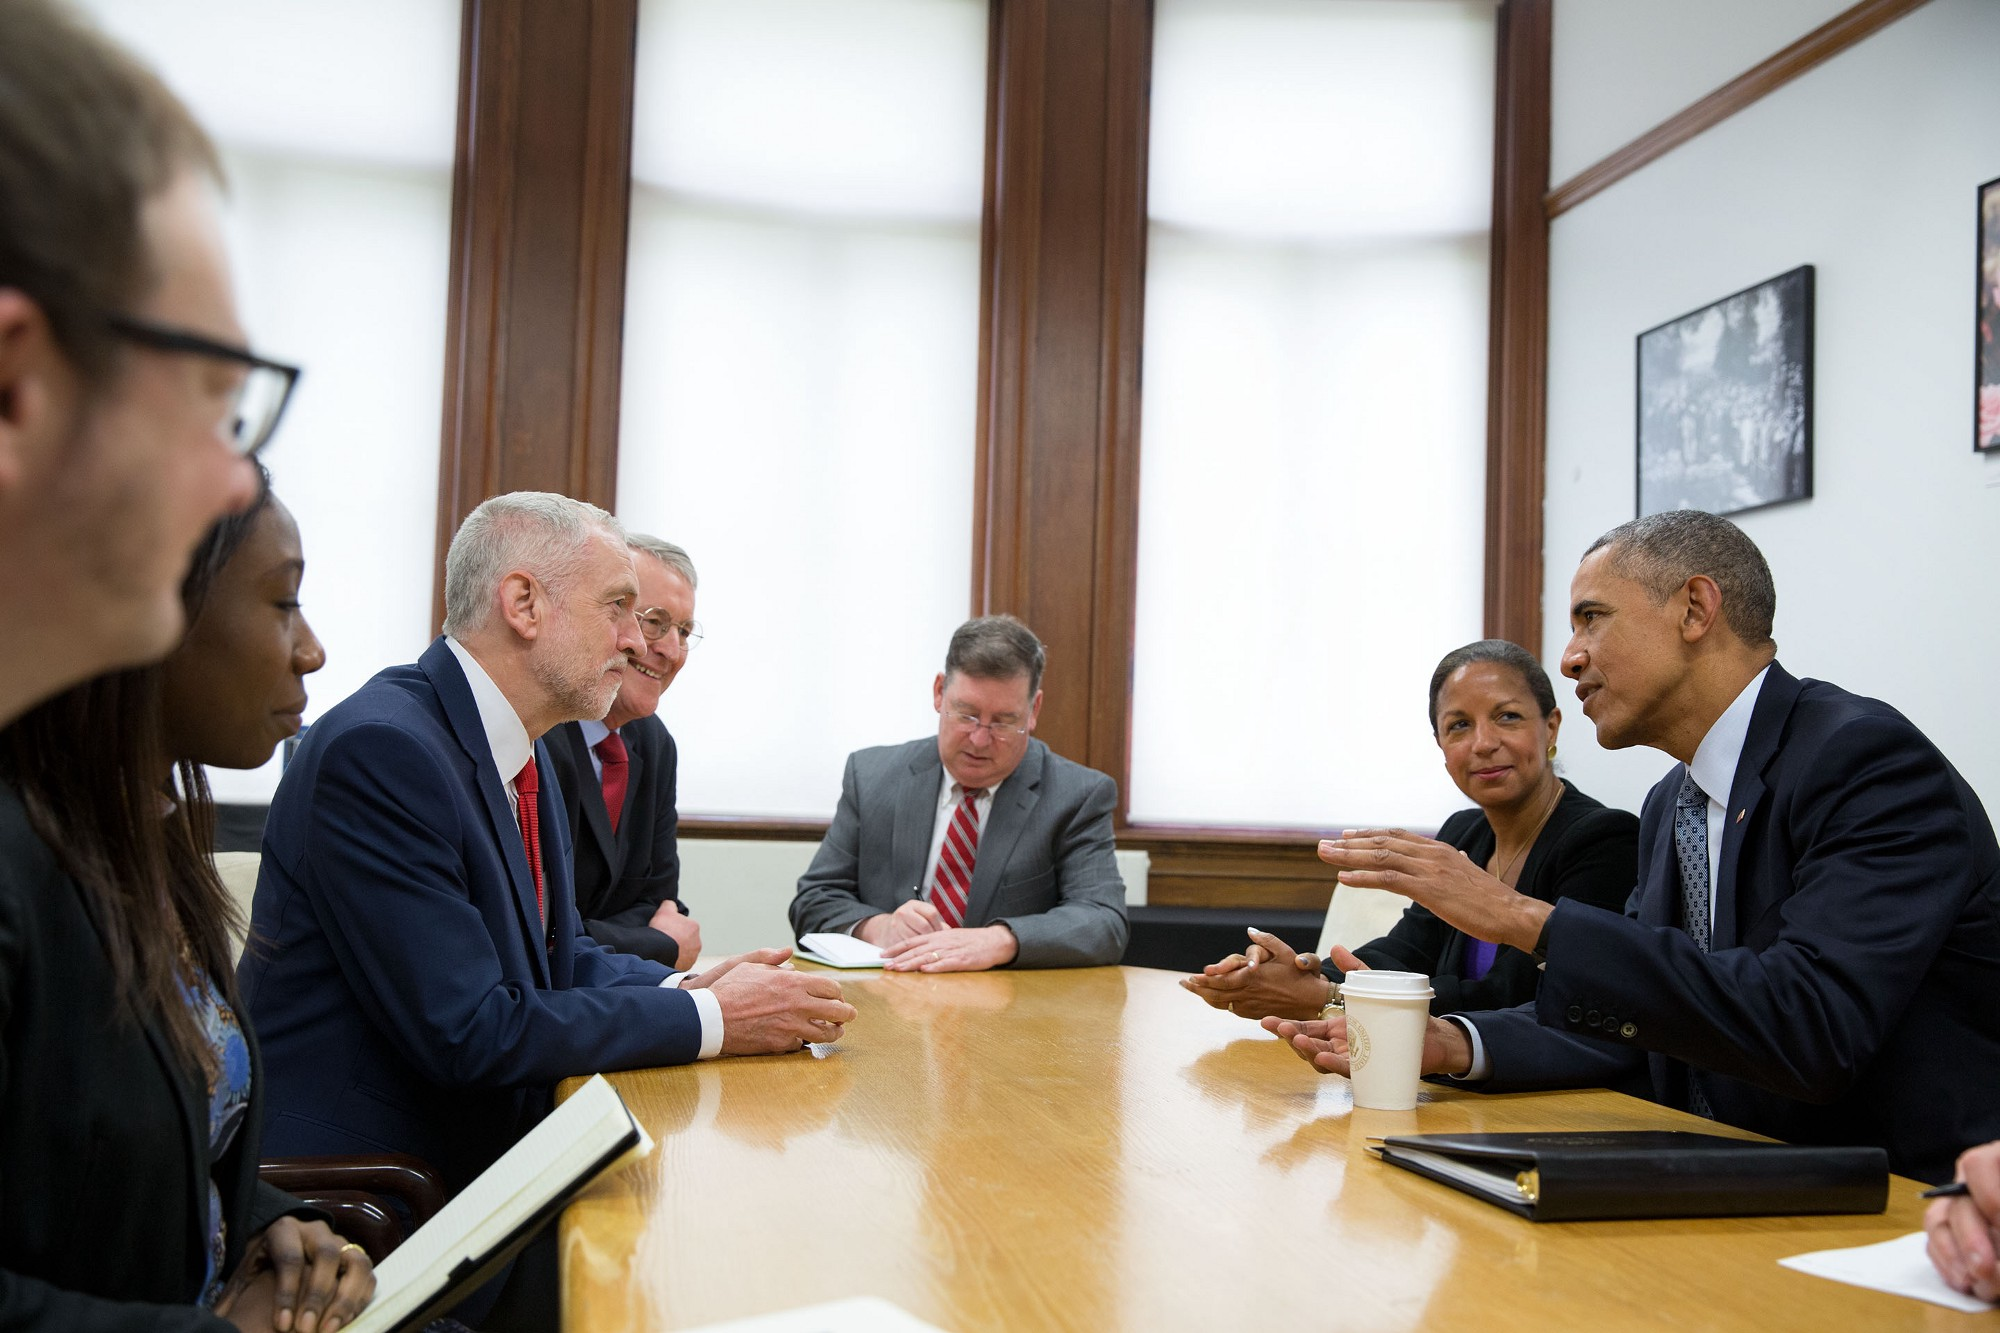 Jeremy Corbyn meets Barack Obama